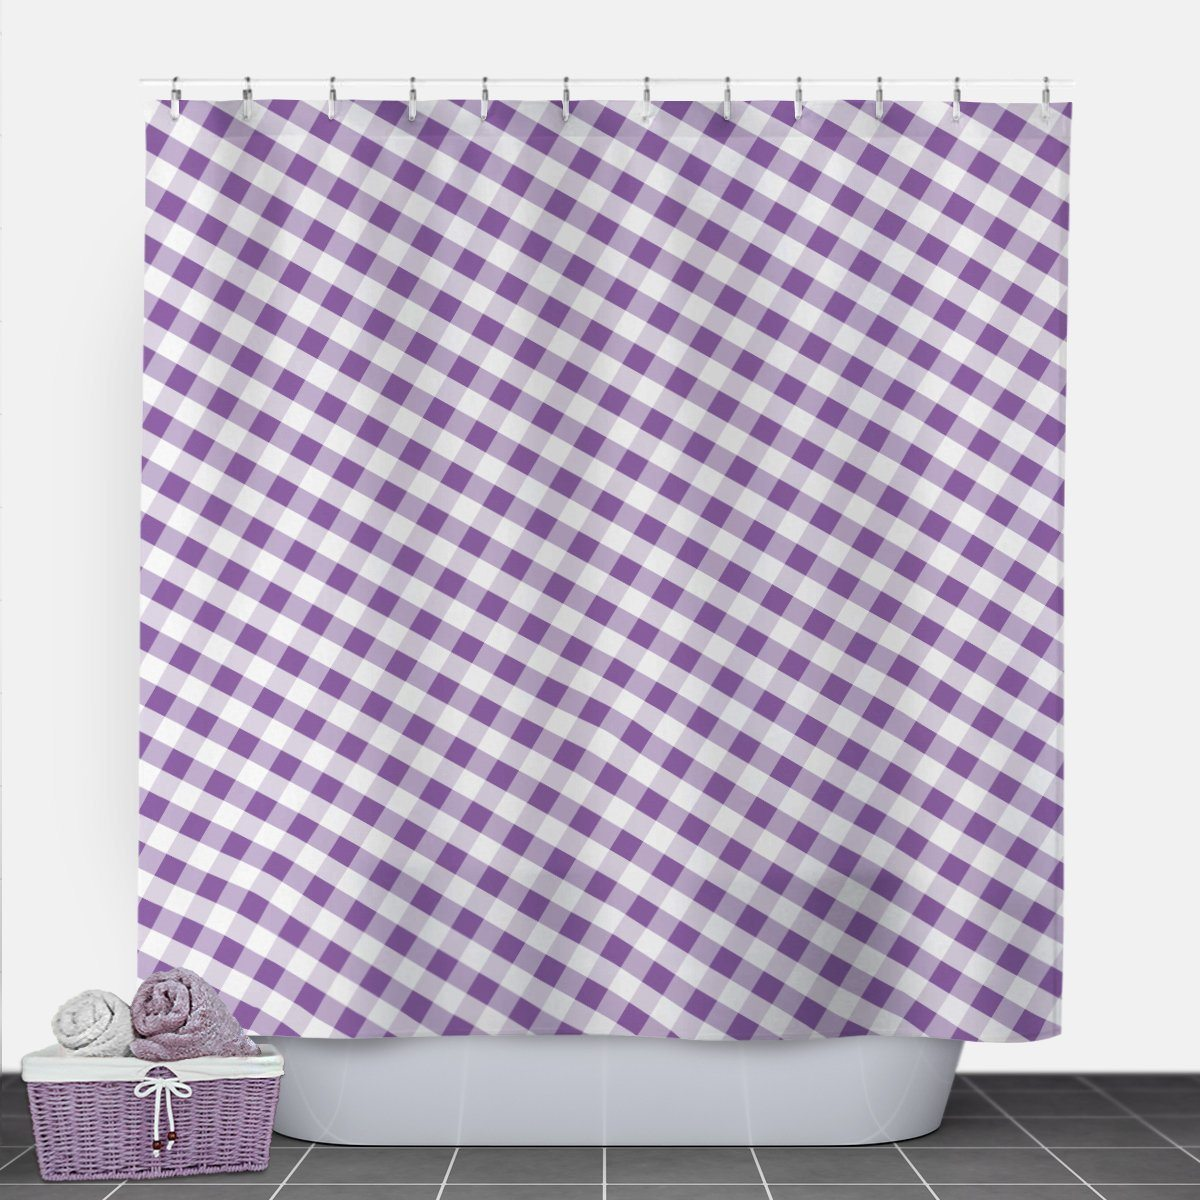 Purple Gingham Shower Curtain at Speckle Rock